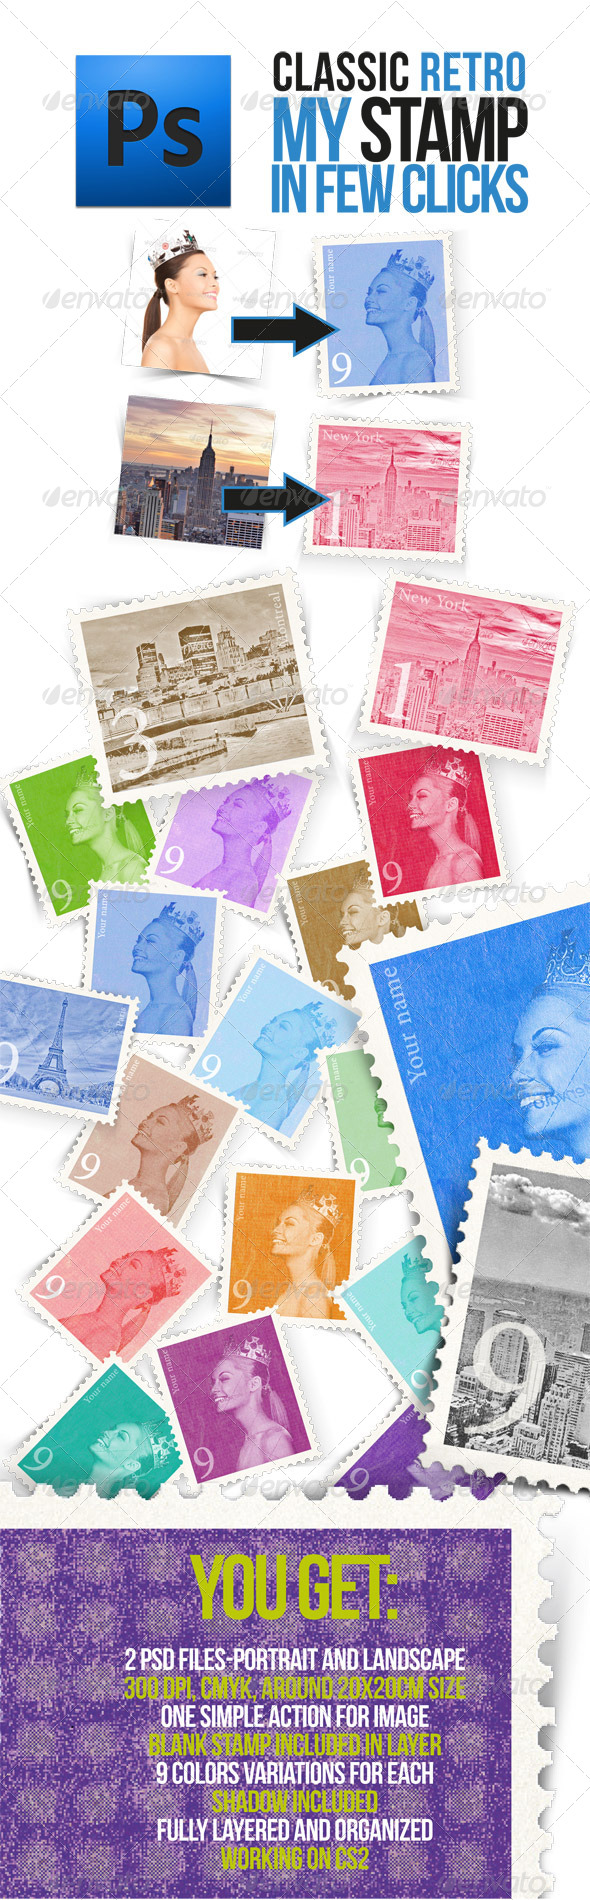 GraphicRiver Retro Postage Stamp Template 5515256